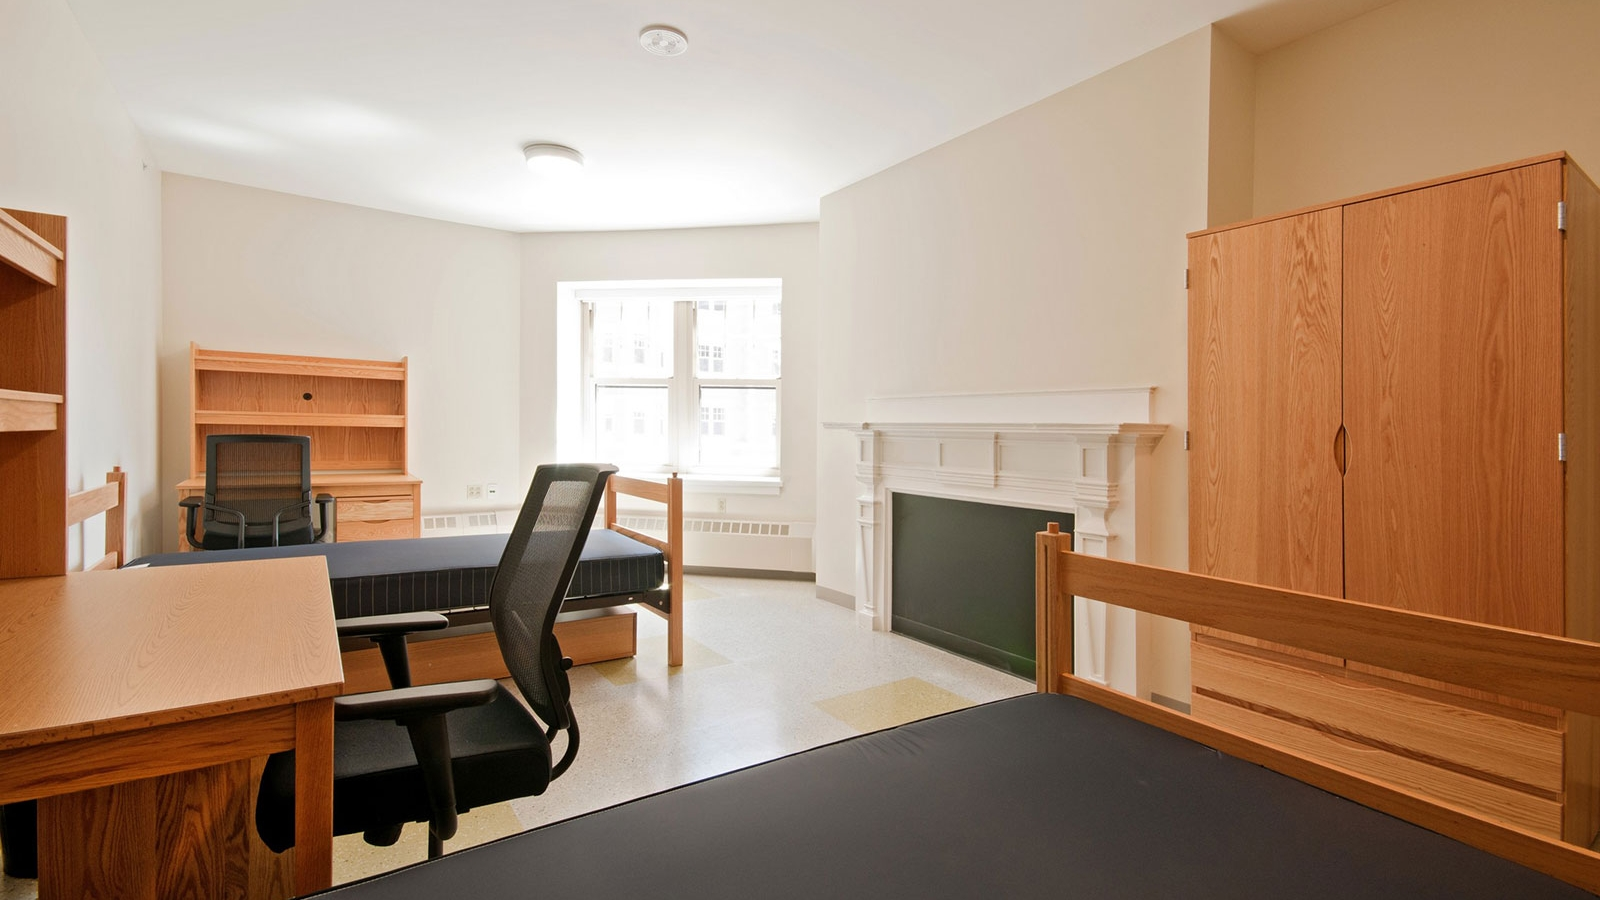 Typical Student Room